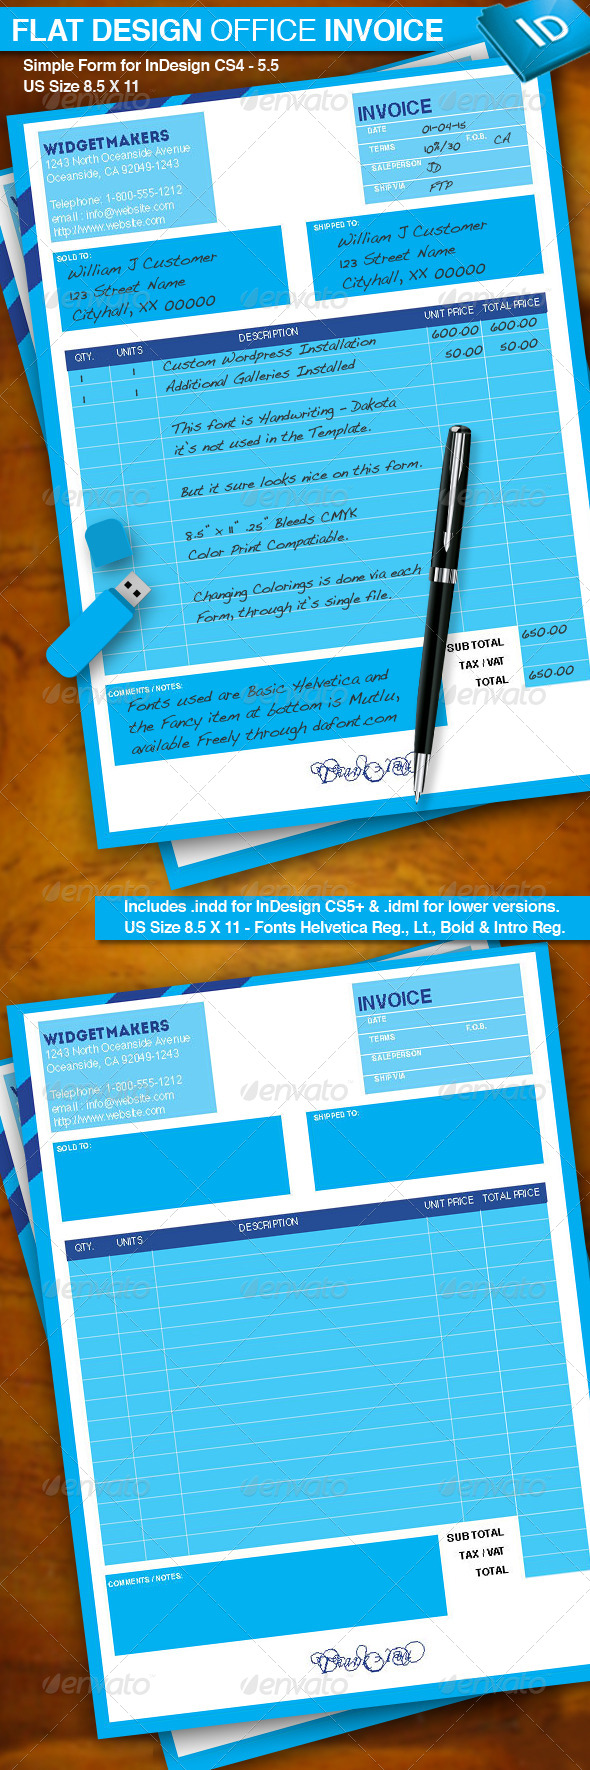 GraphicRiver Flat Design Office Invoice 6426195